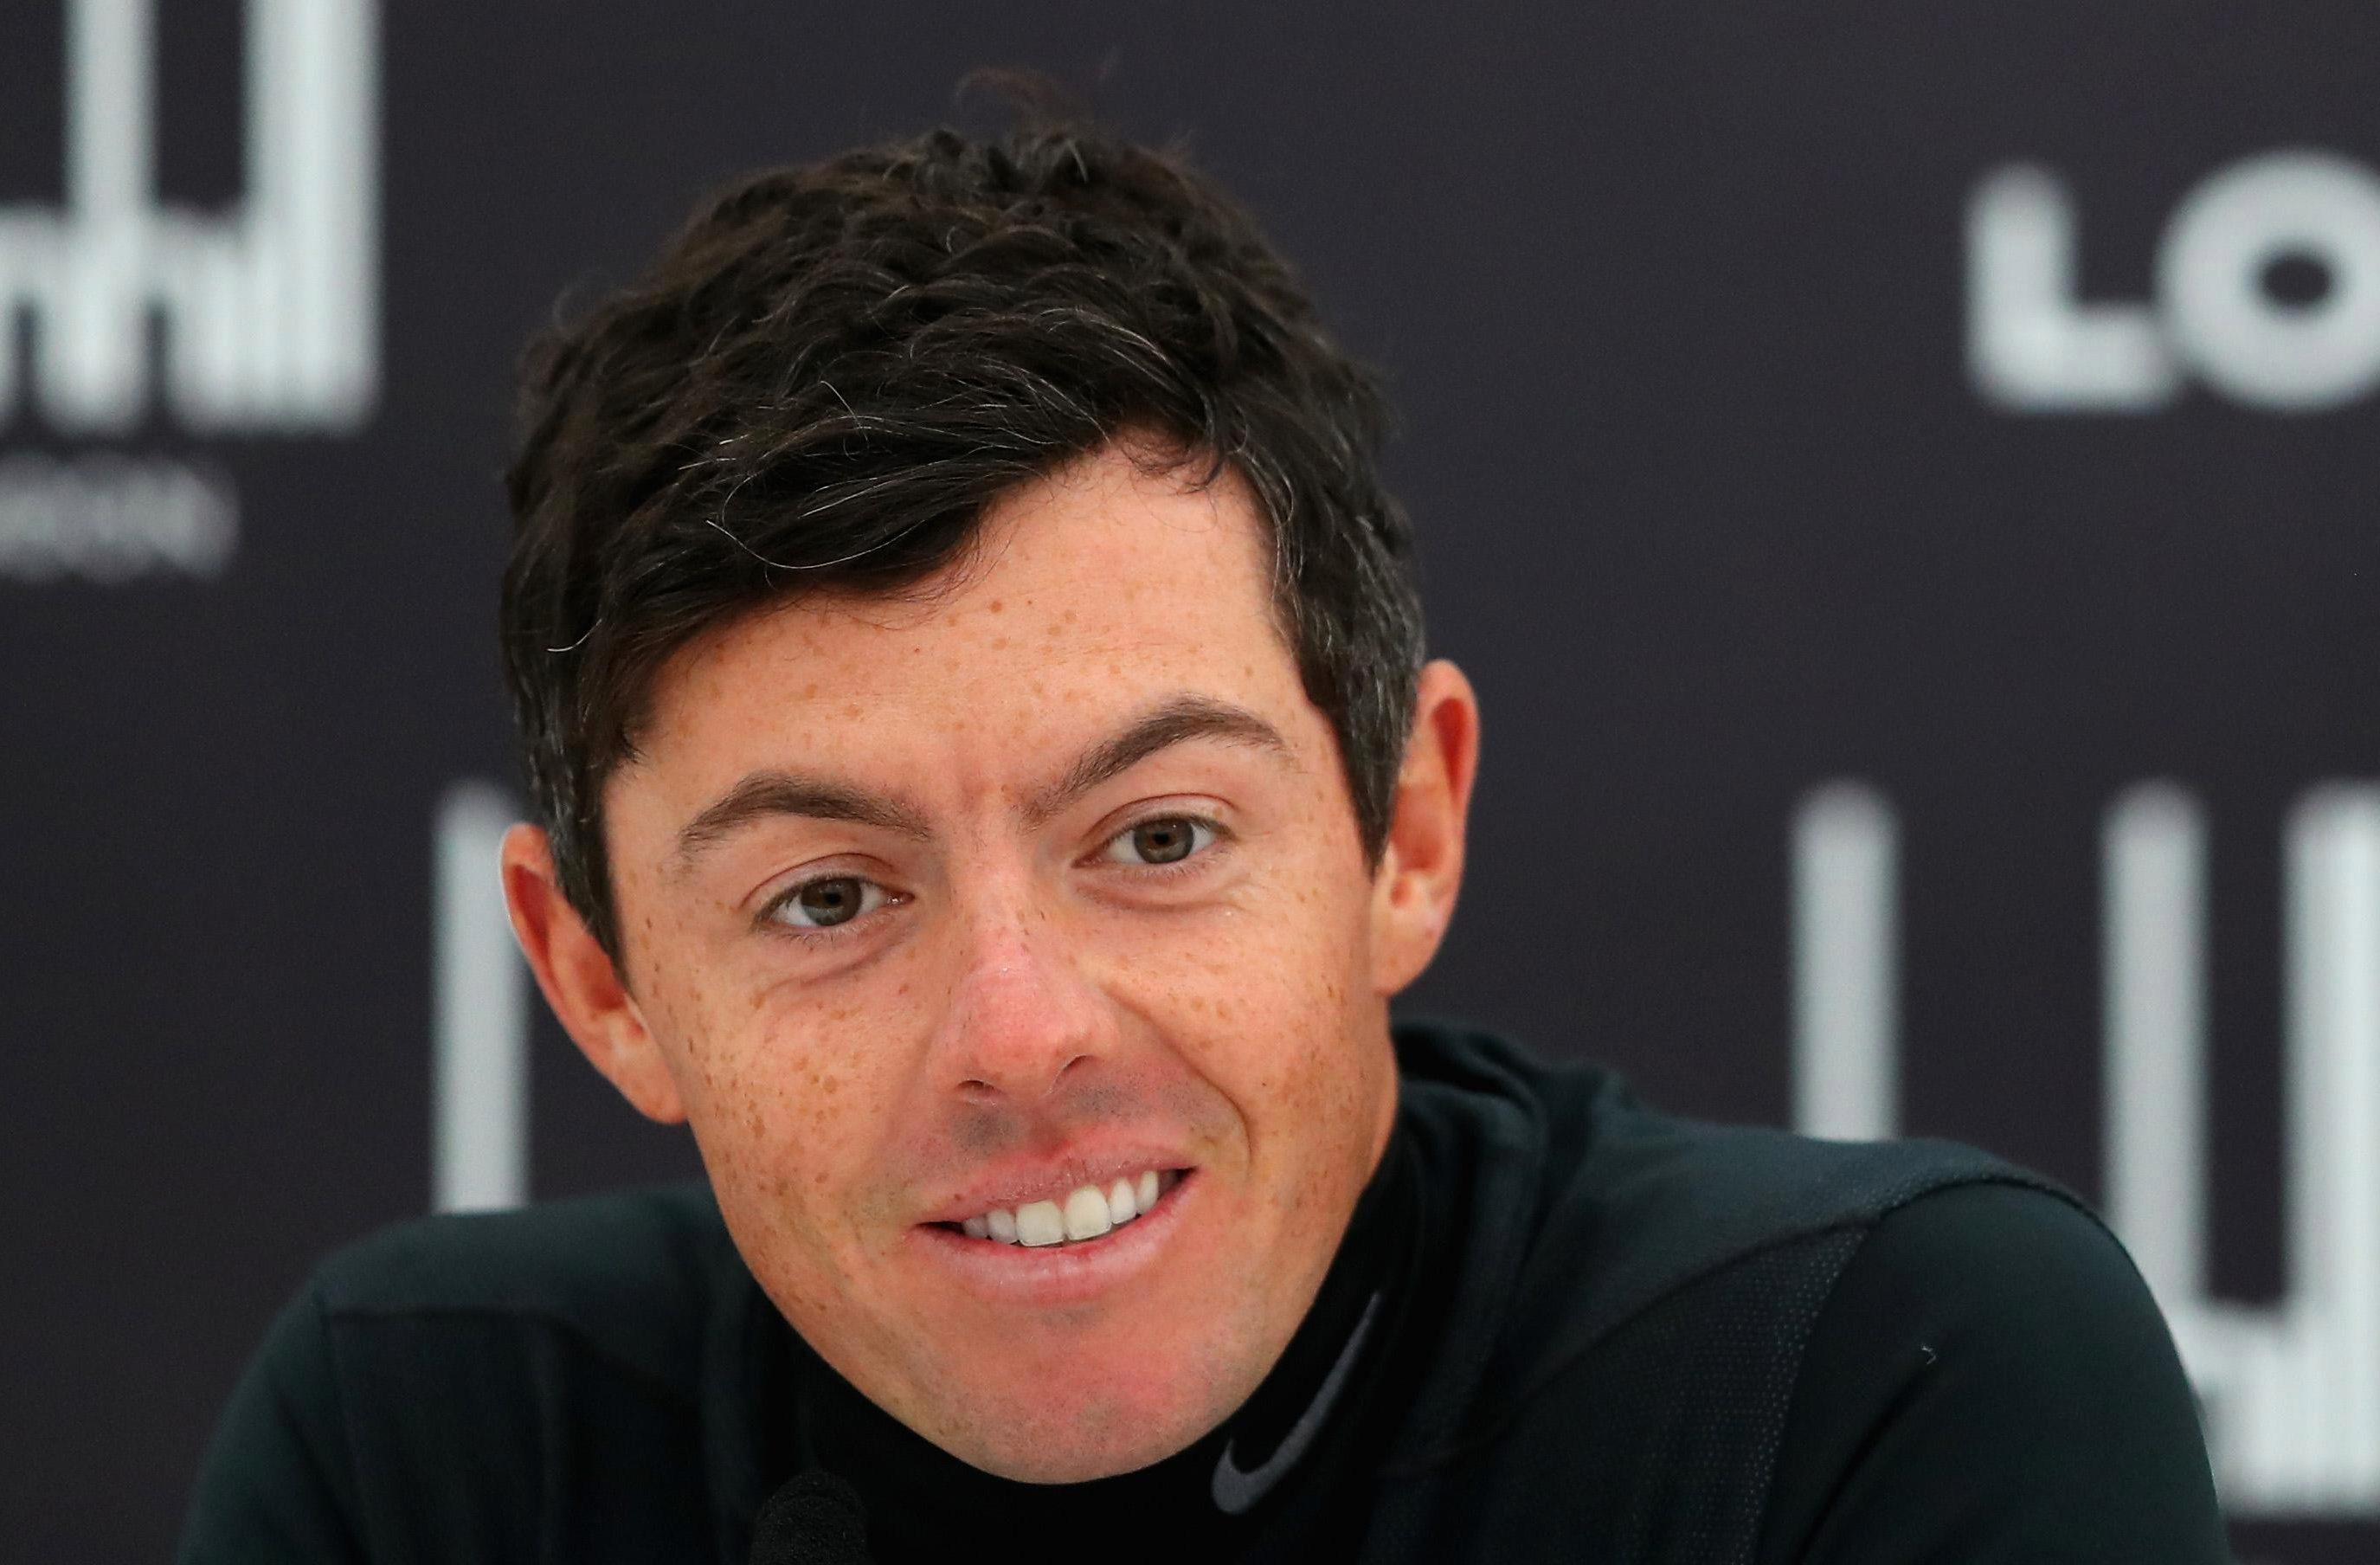 Rory McIlroy might see the funny side if he sees the photo of his female look-alike apparently getting married in the 1960s